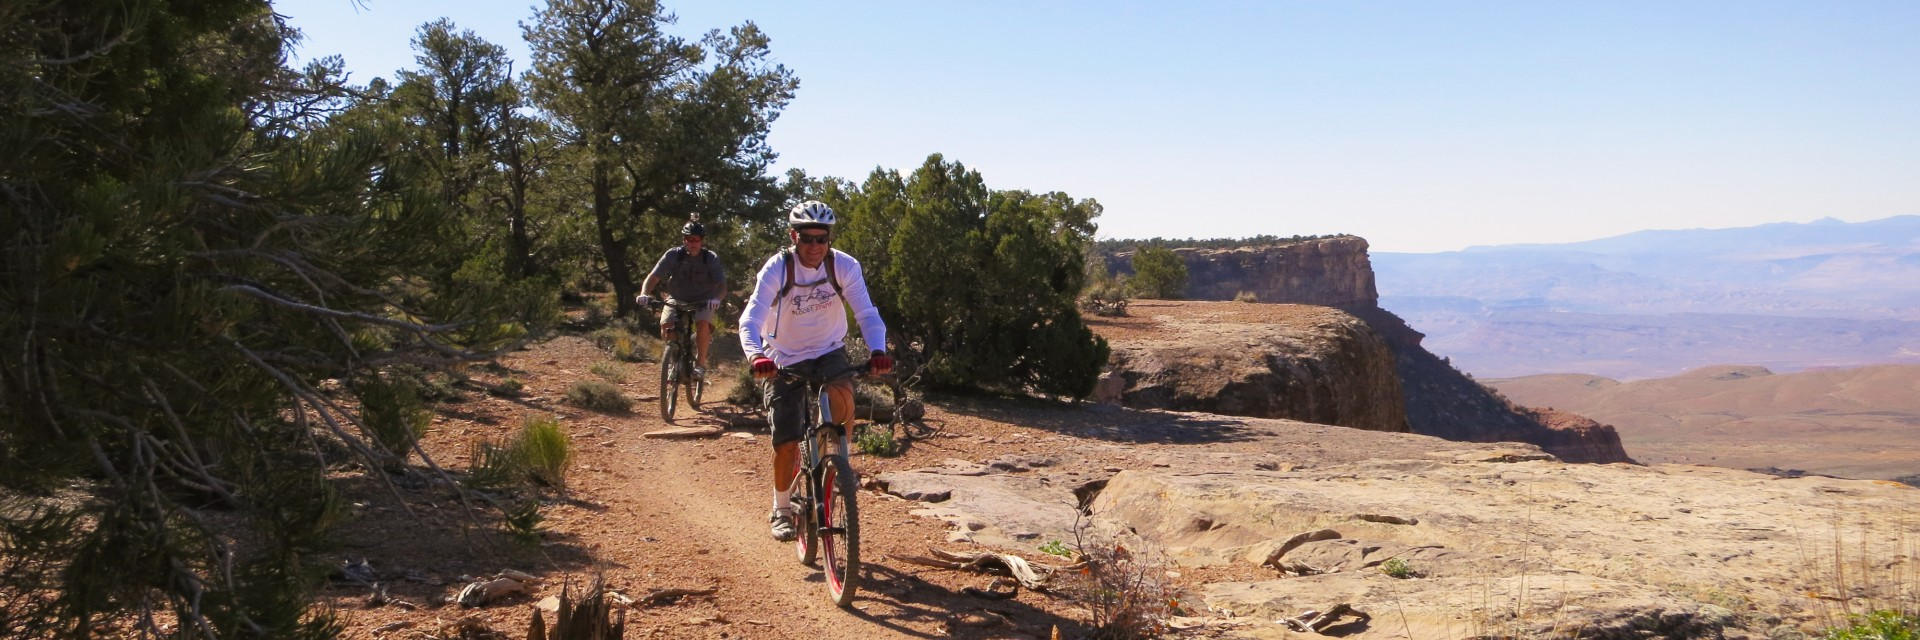 Gooseberry Mesa, St. George, Utah - amazing singletrack mountain biking, guided tour